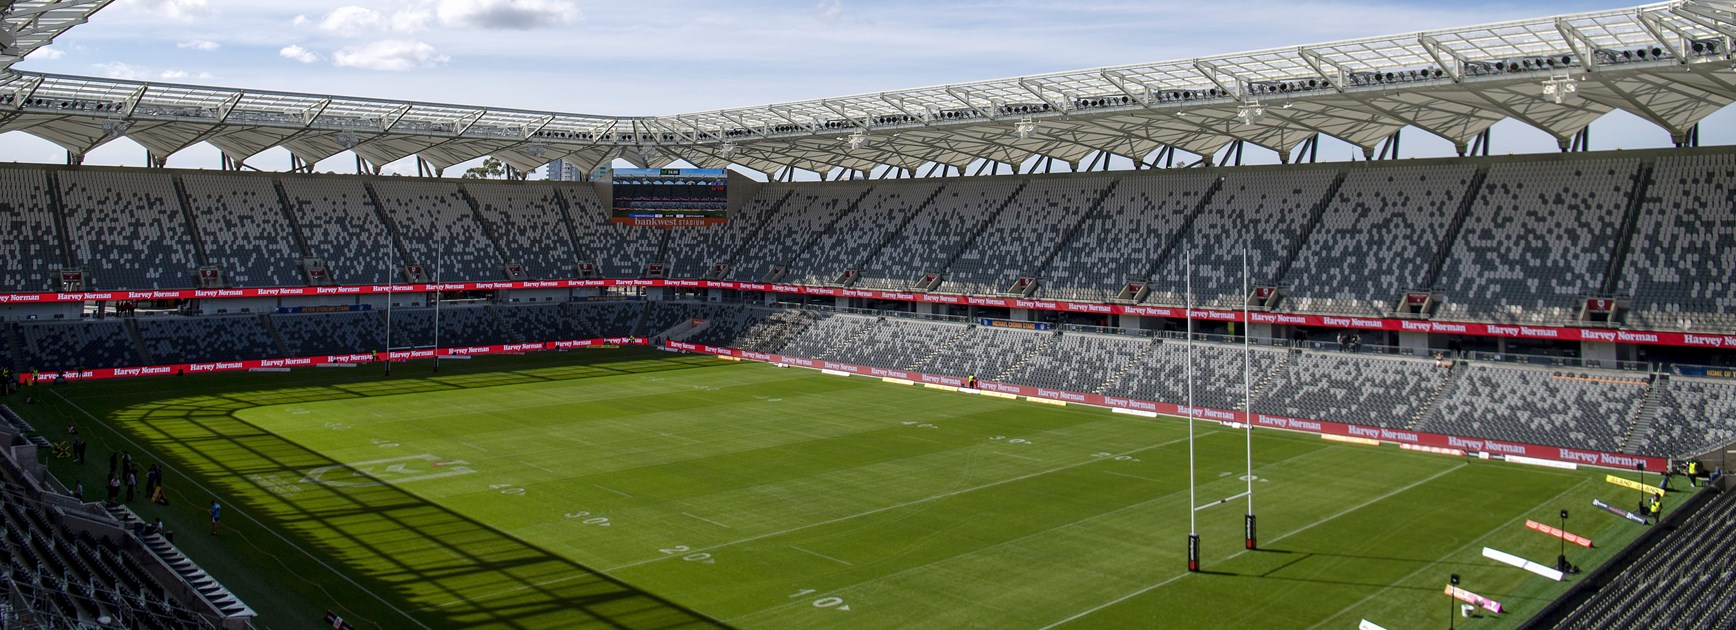 Bankwest Stadium cleared to host remaining round 7 matches